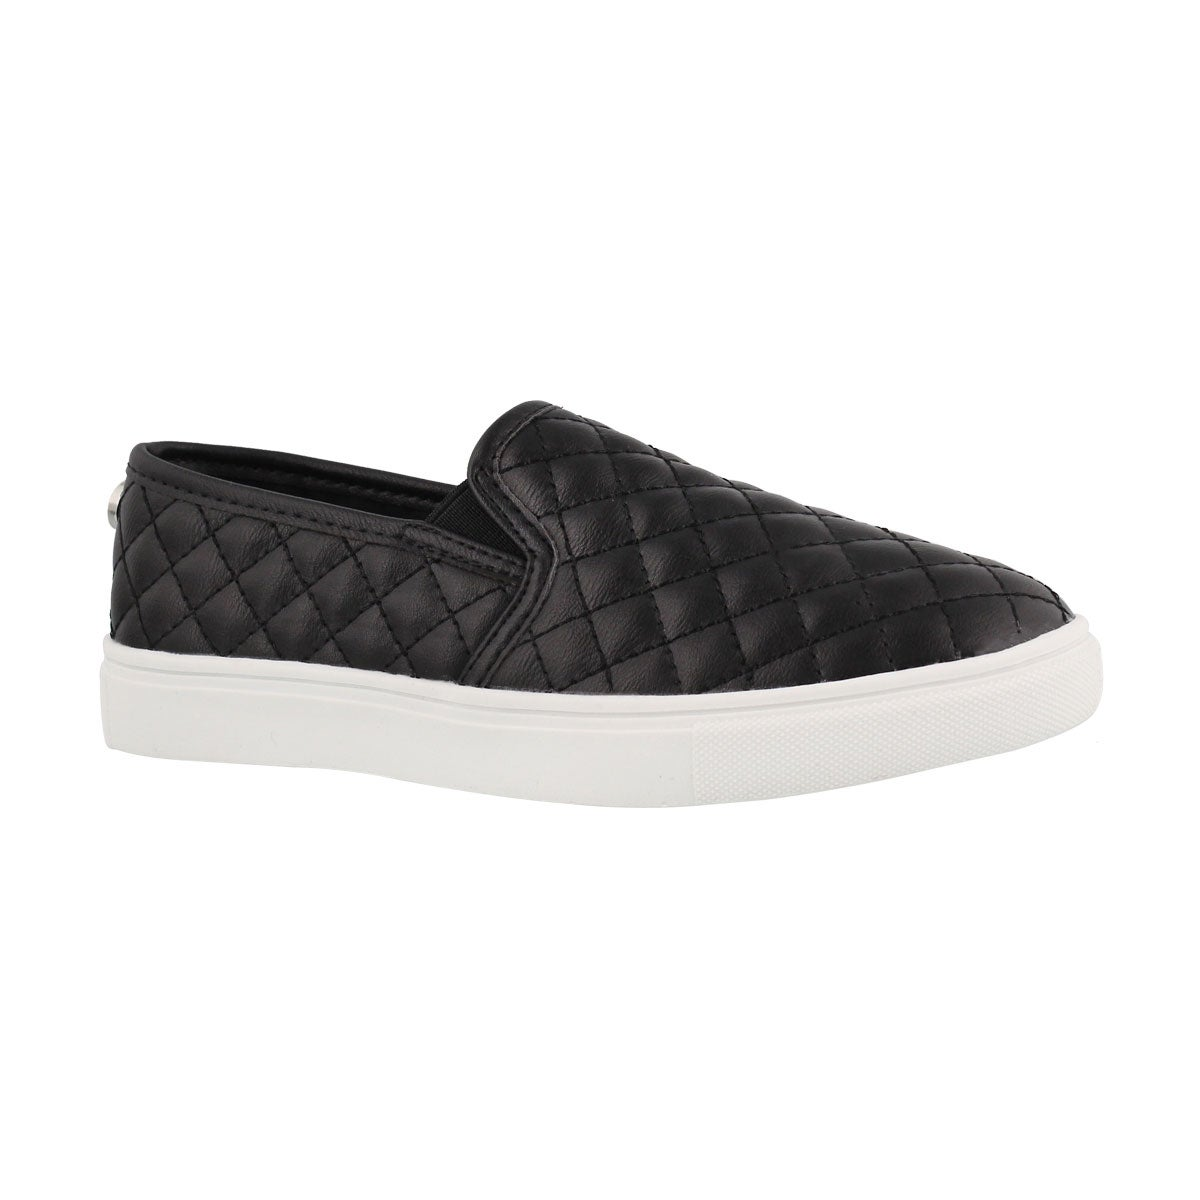 Grls J Ecentrcq black casual slipon shoe